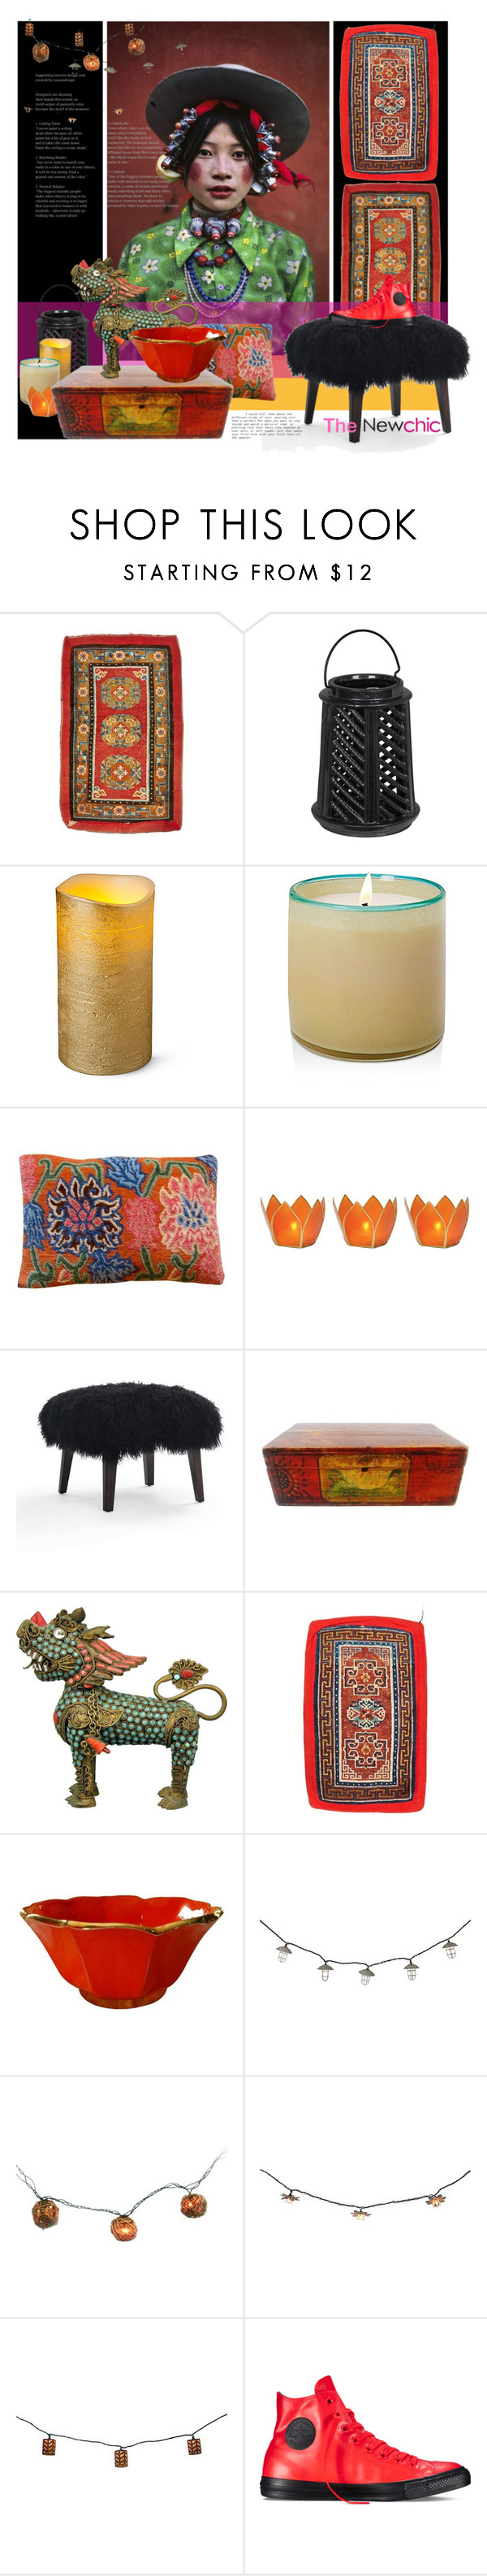 """""""Tibet...mon amour!"""" by laste-co ❤ liked on Polyvore featuring interior, interiors, interior design, home, home decor, interior decorating, Improvements, LAFCO, Cultural Intrigue and Mitchell Gold + Bob Williams"""